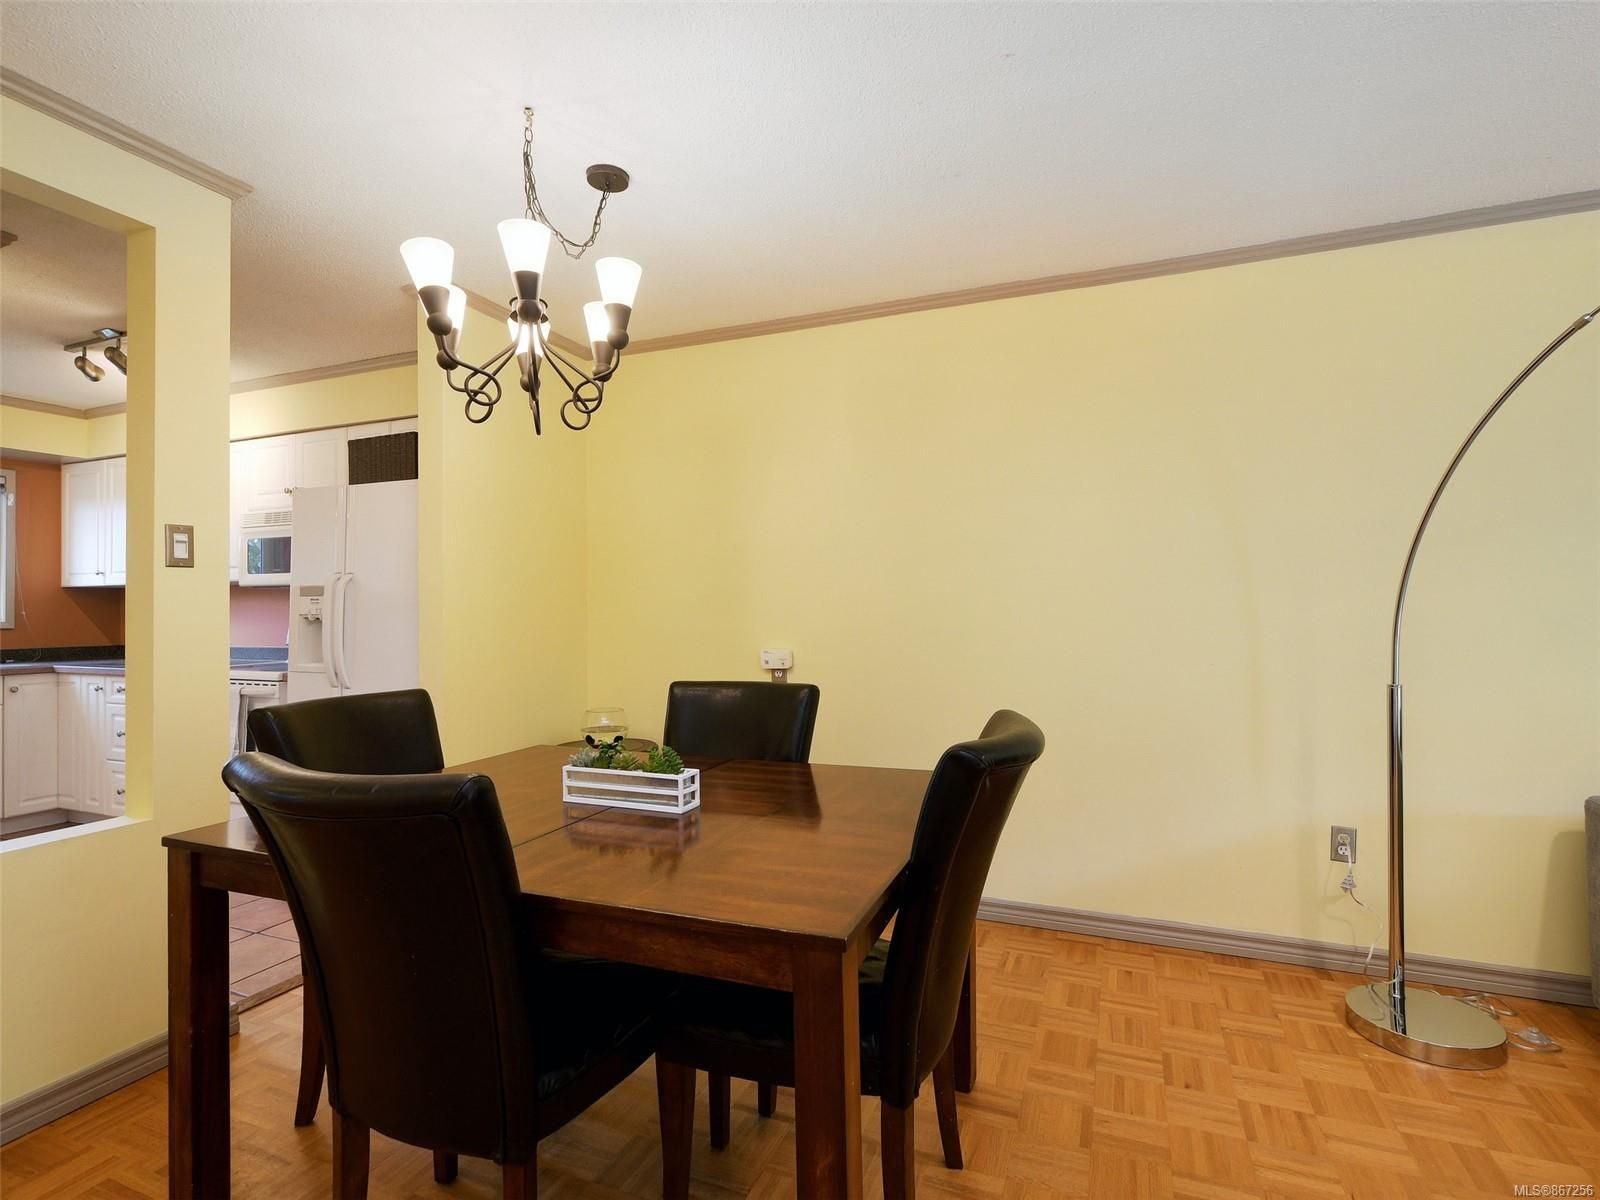 Photo 5: Photos: 5 869 Swan St in : SE Swan Lake Row/Townhouse for sale (Saanich East)  : MLS®# 867256